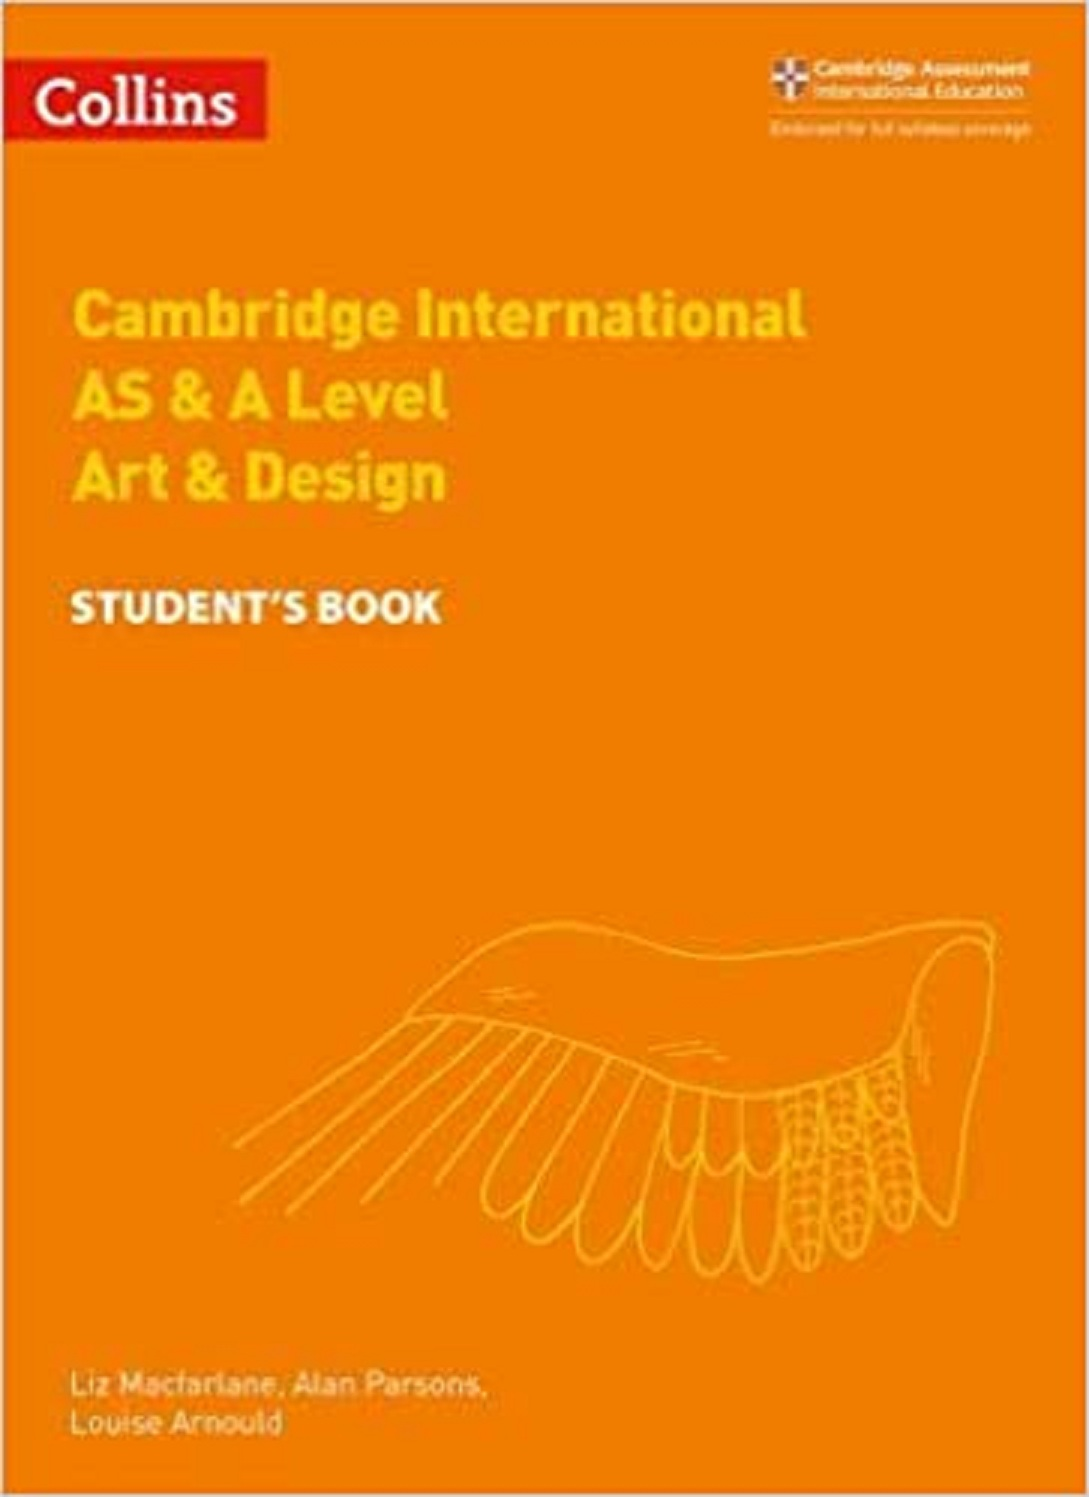 Collins Cambridge International AS & A Level Art and Design Student's Book